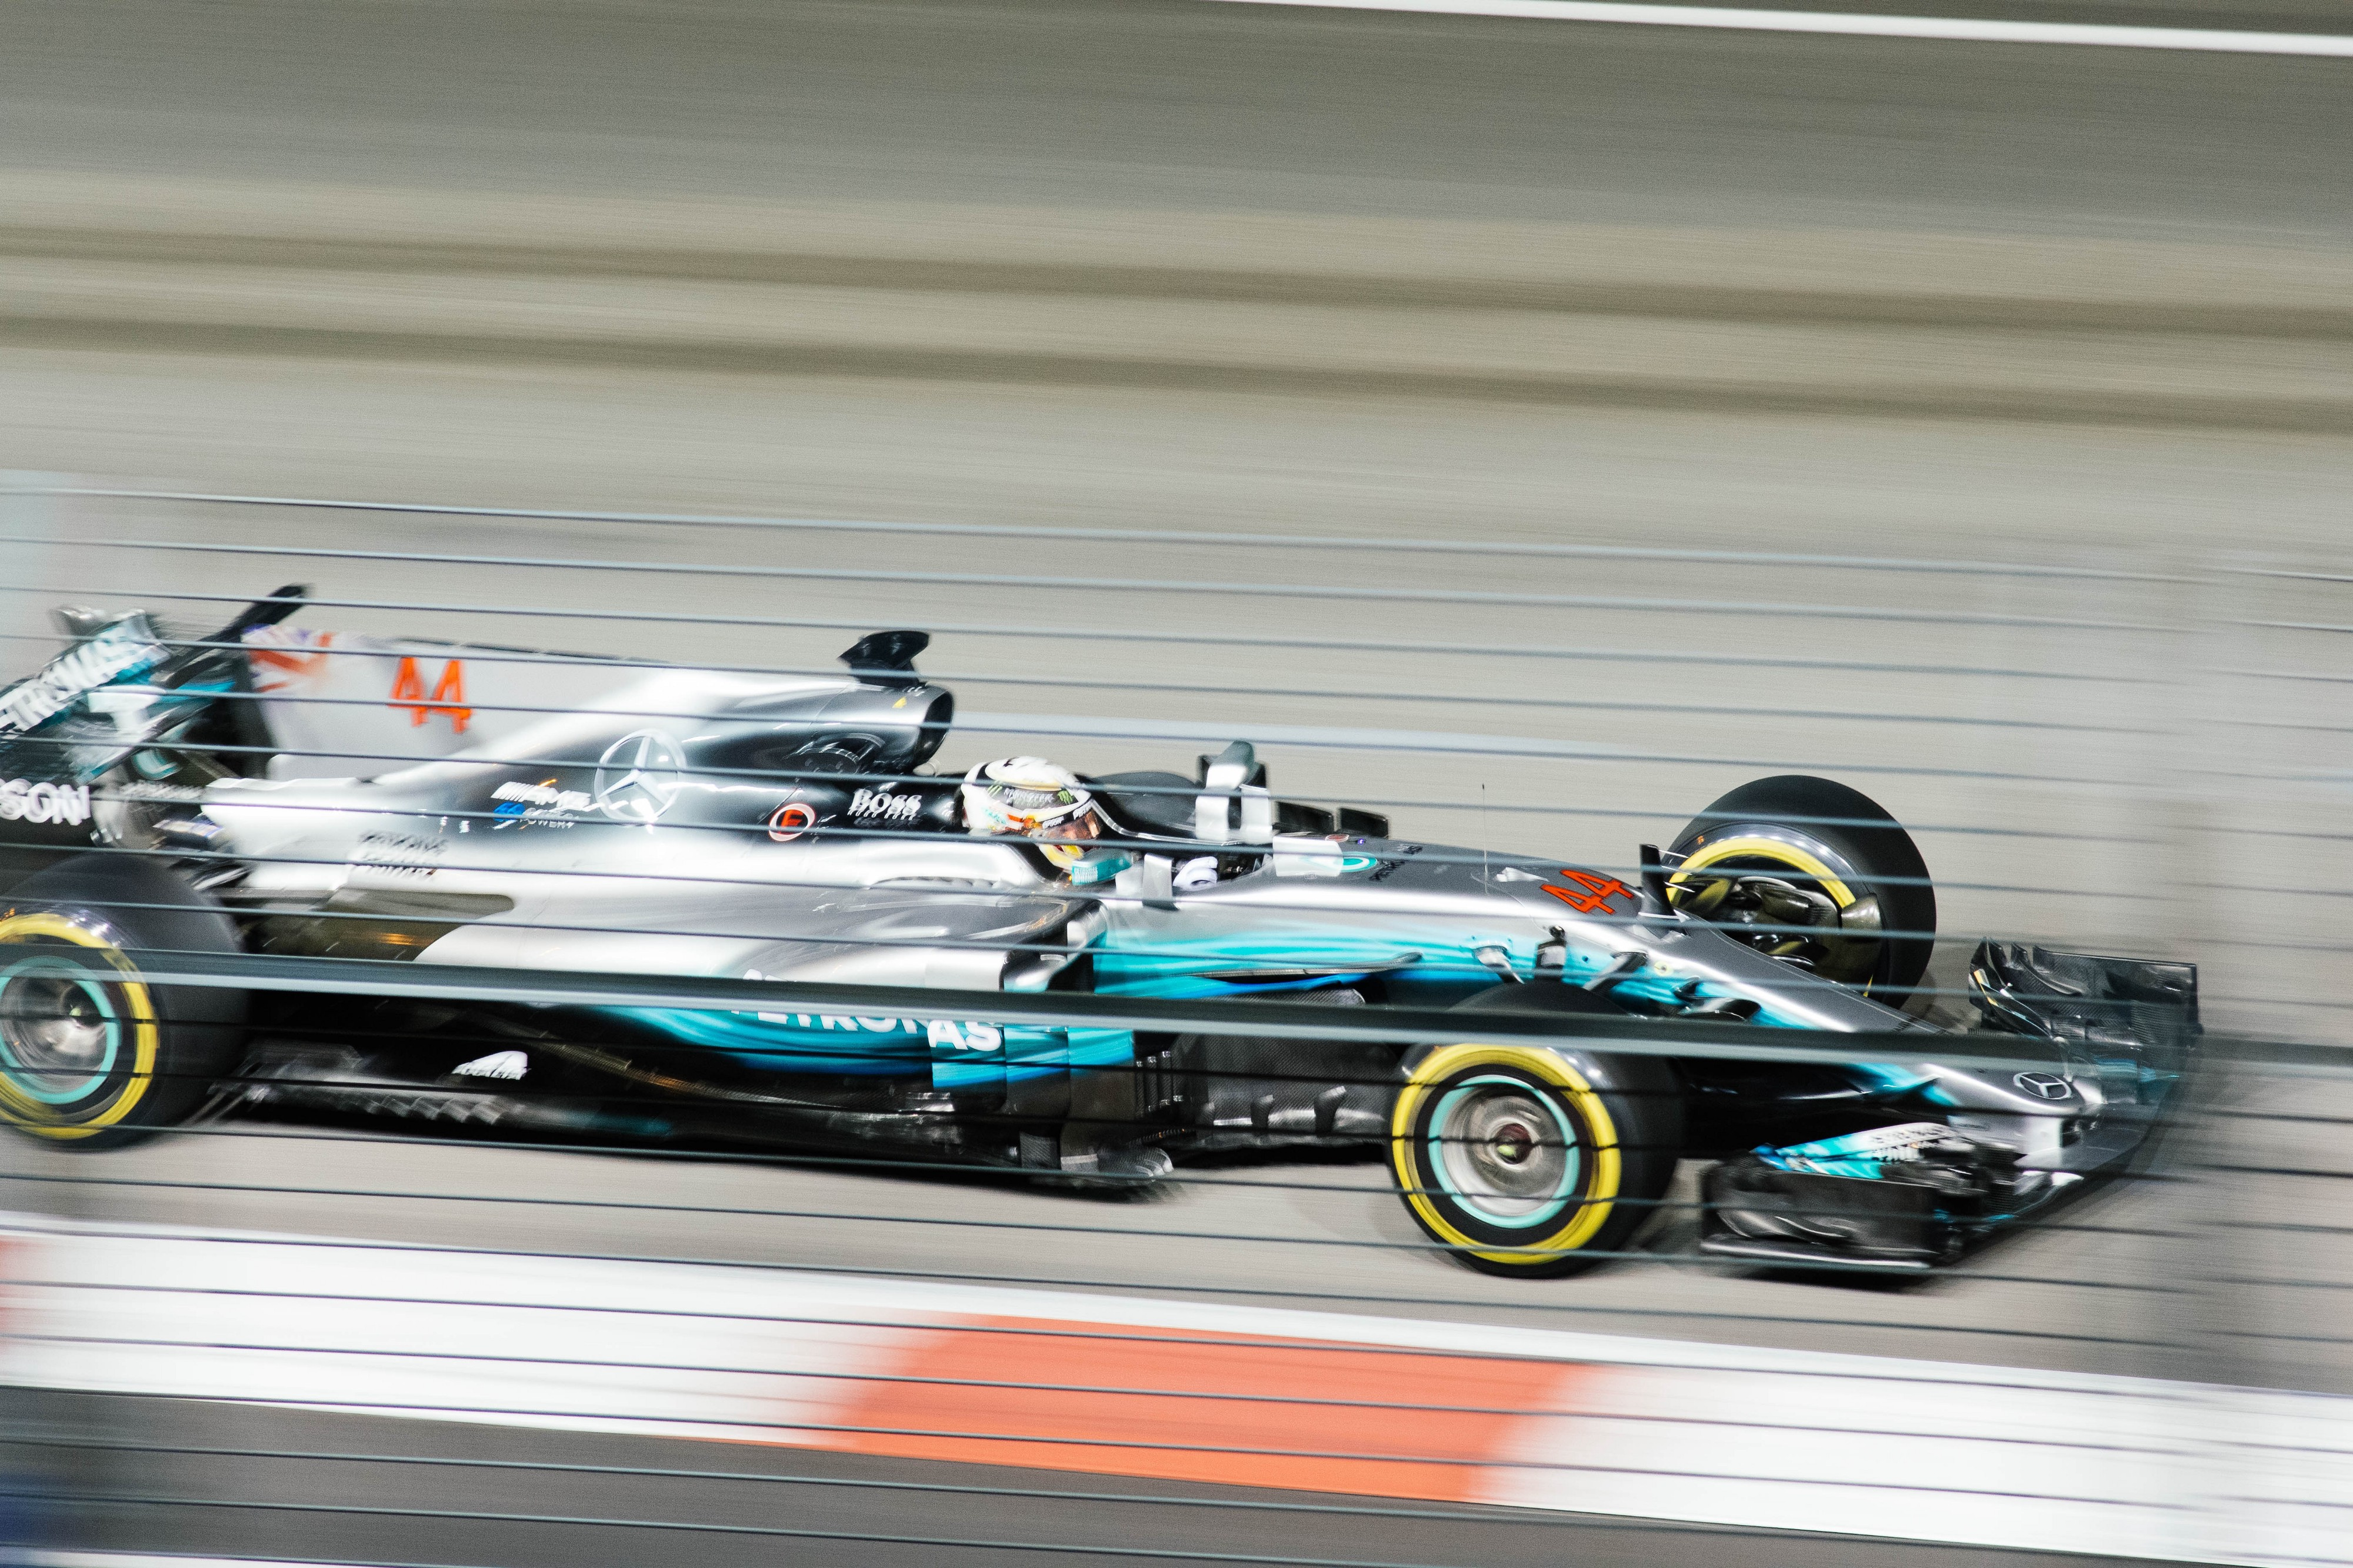 How to watch F1 2018 live stream overseas (AppleTV compatible)